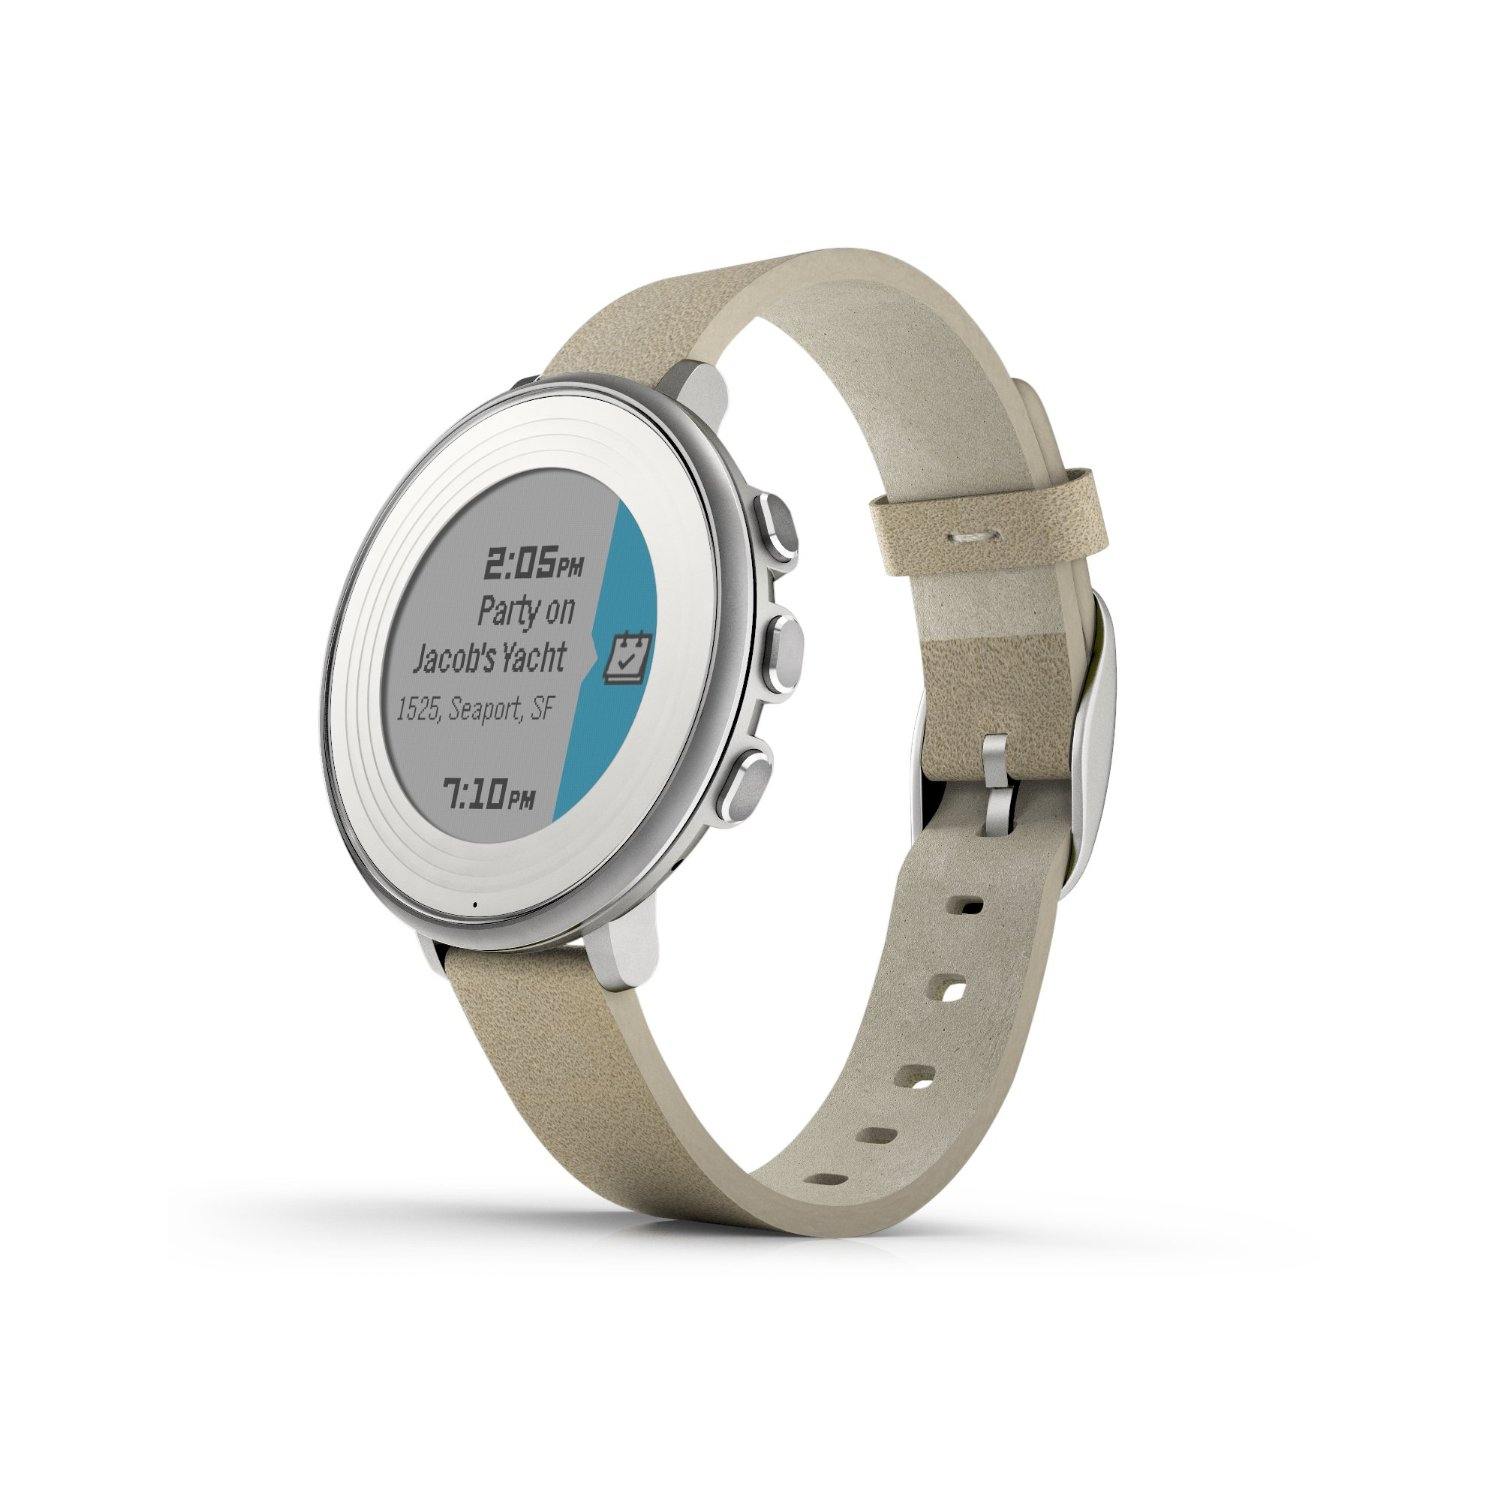 Top 6 Smartwatches And Activity Trackers For Women This